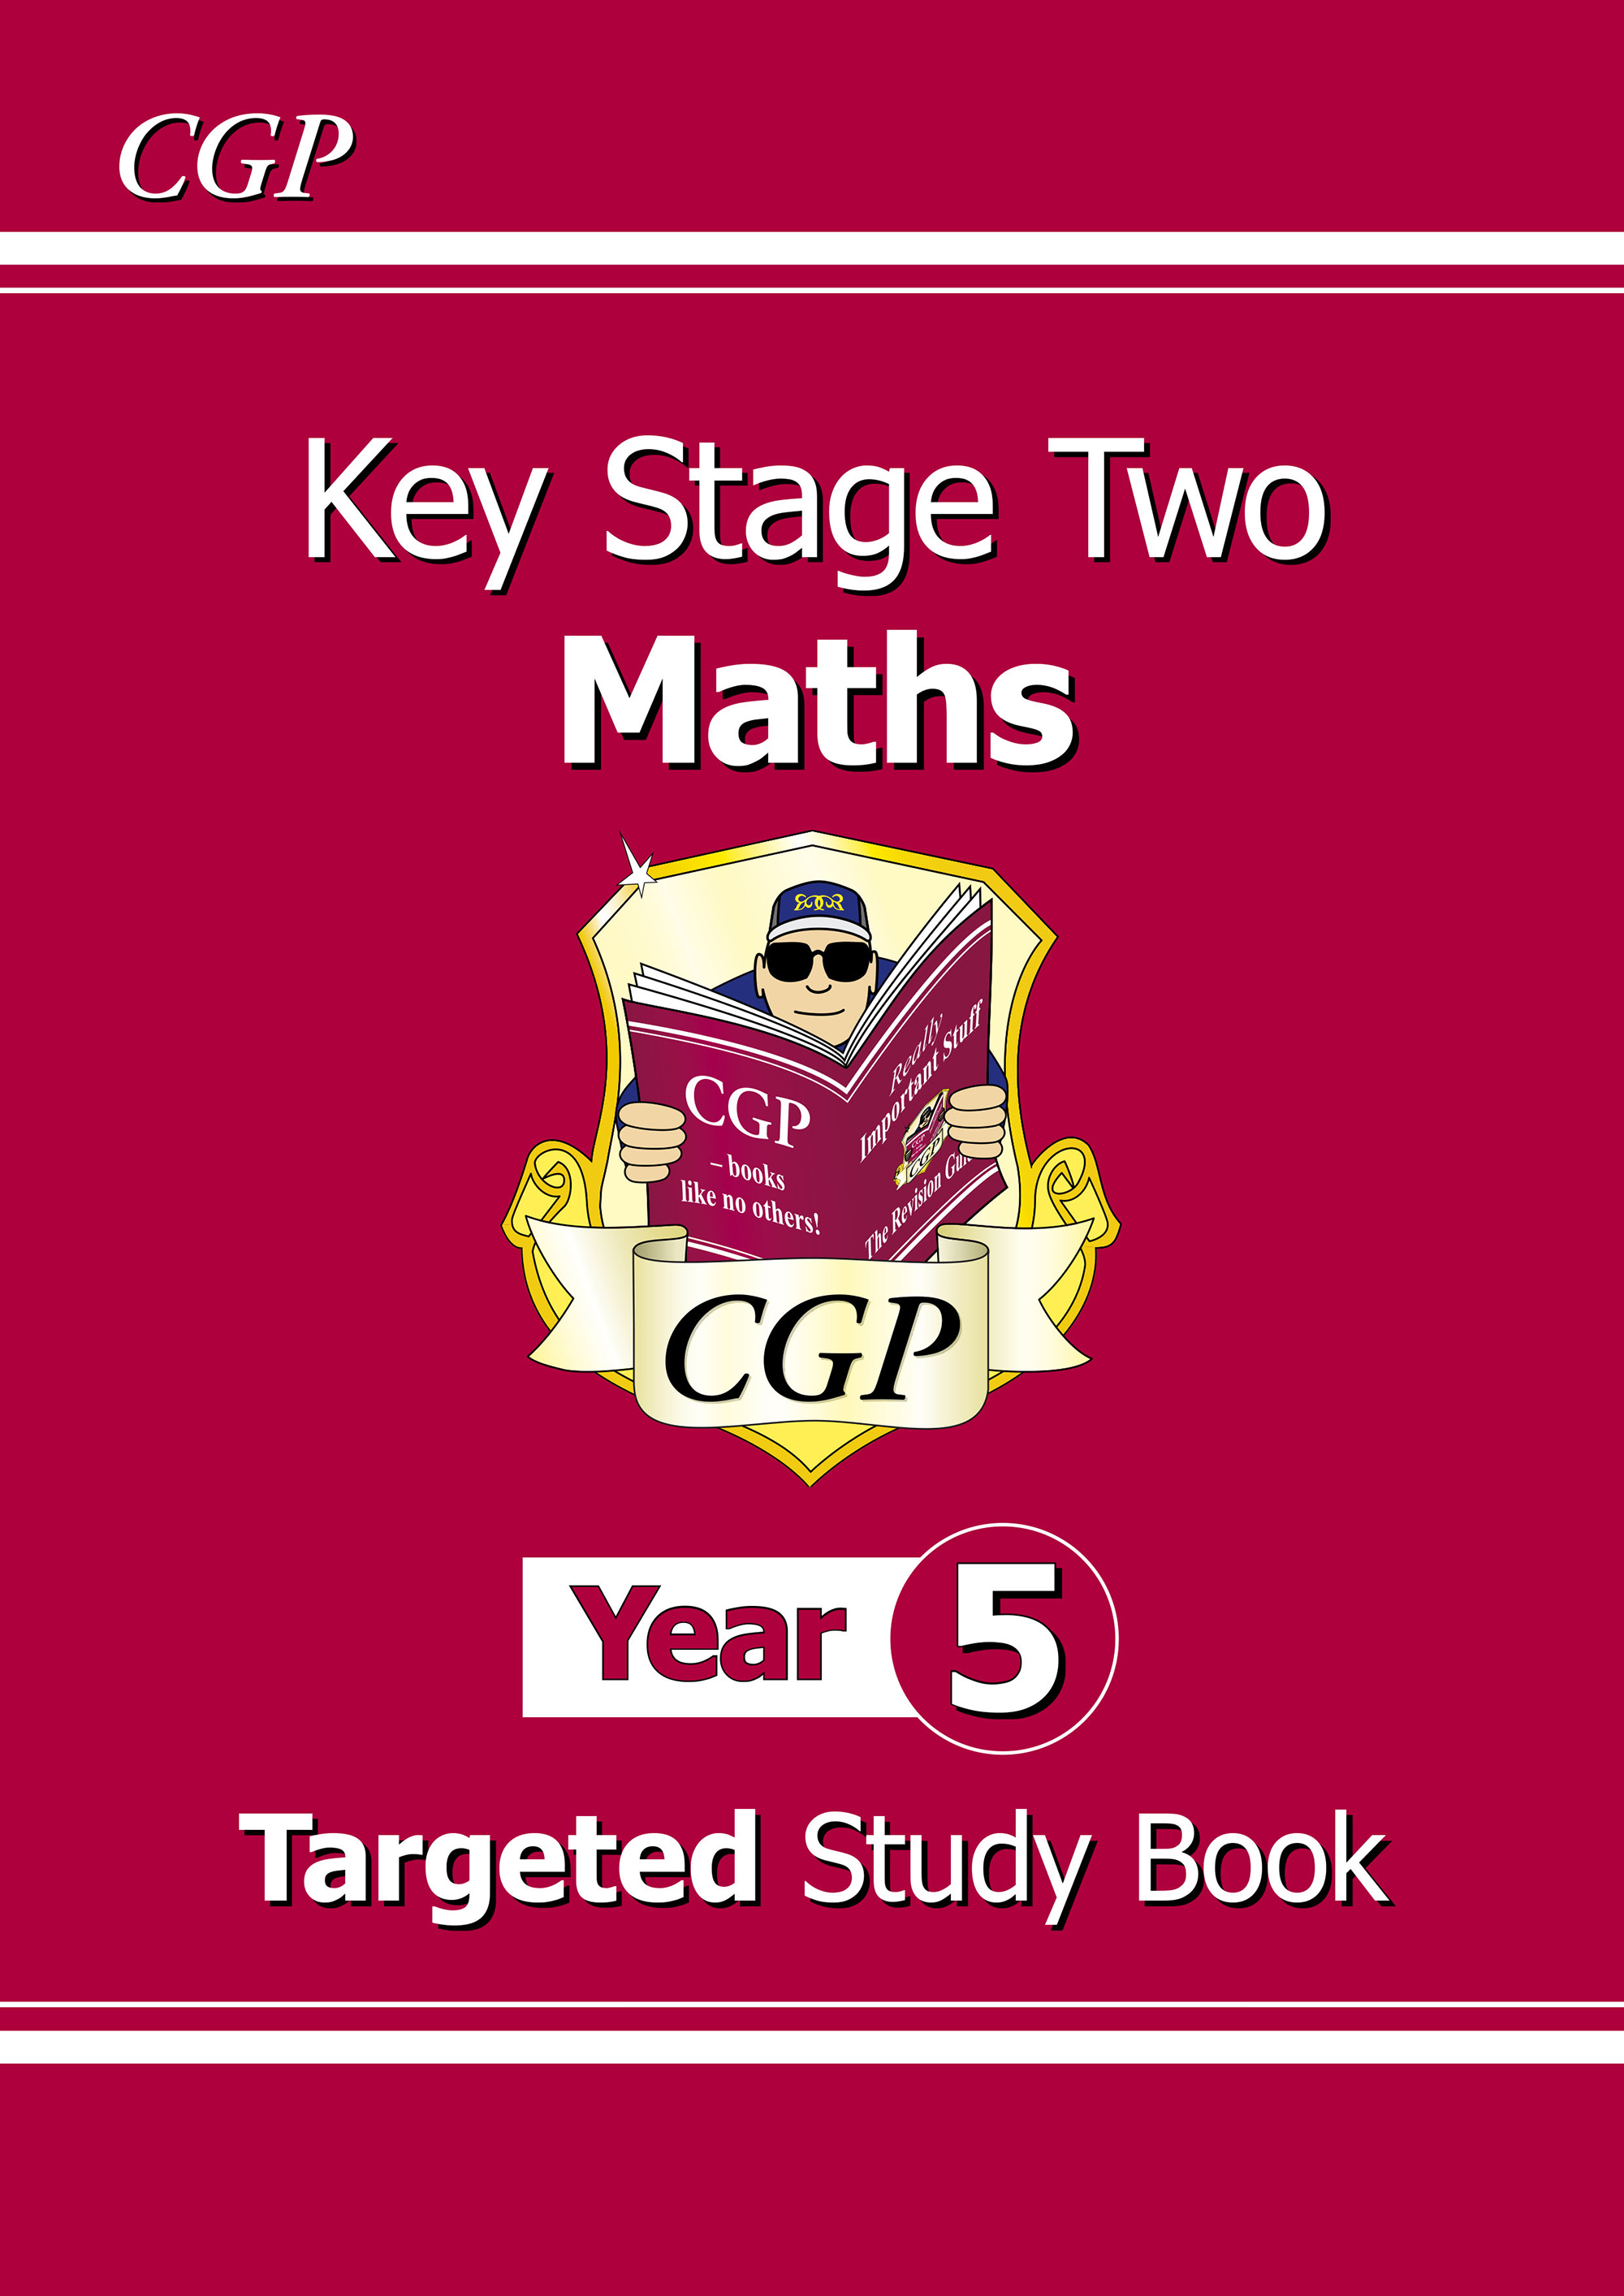 M5R23DK - KS2 Maths Targeted Study Book - Year 5